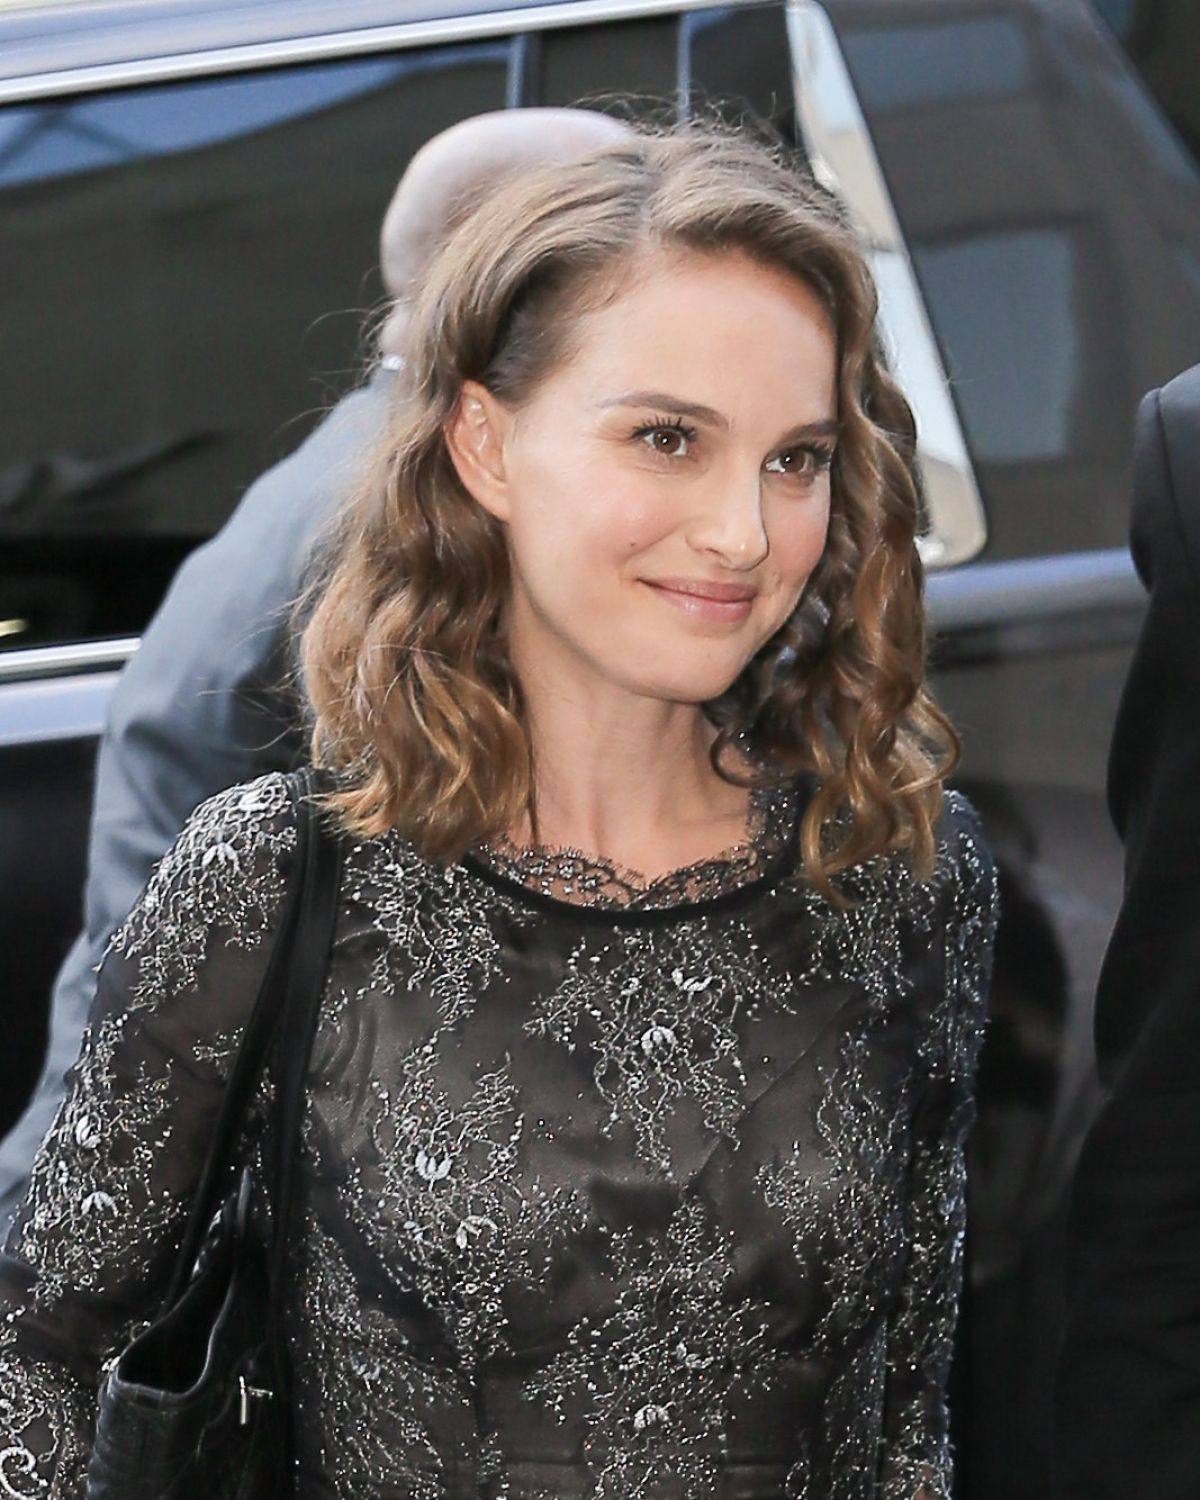 NATALIE PORTMAN Arrives at a Studio in New York 08/18/2016